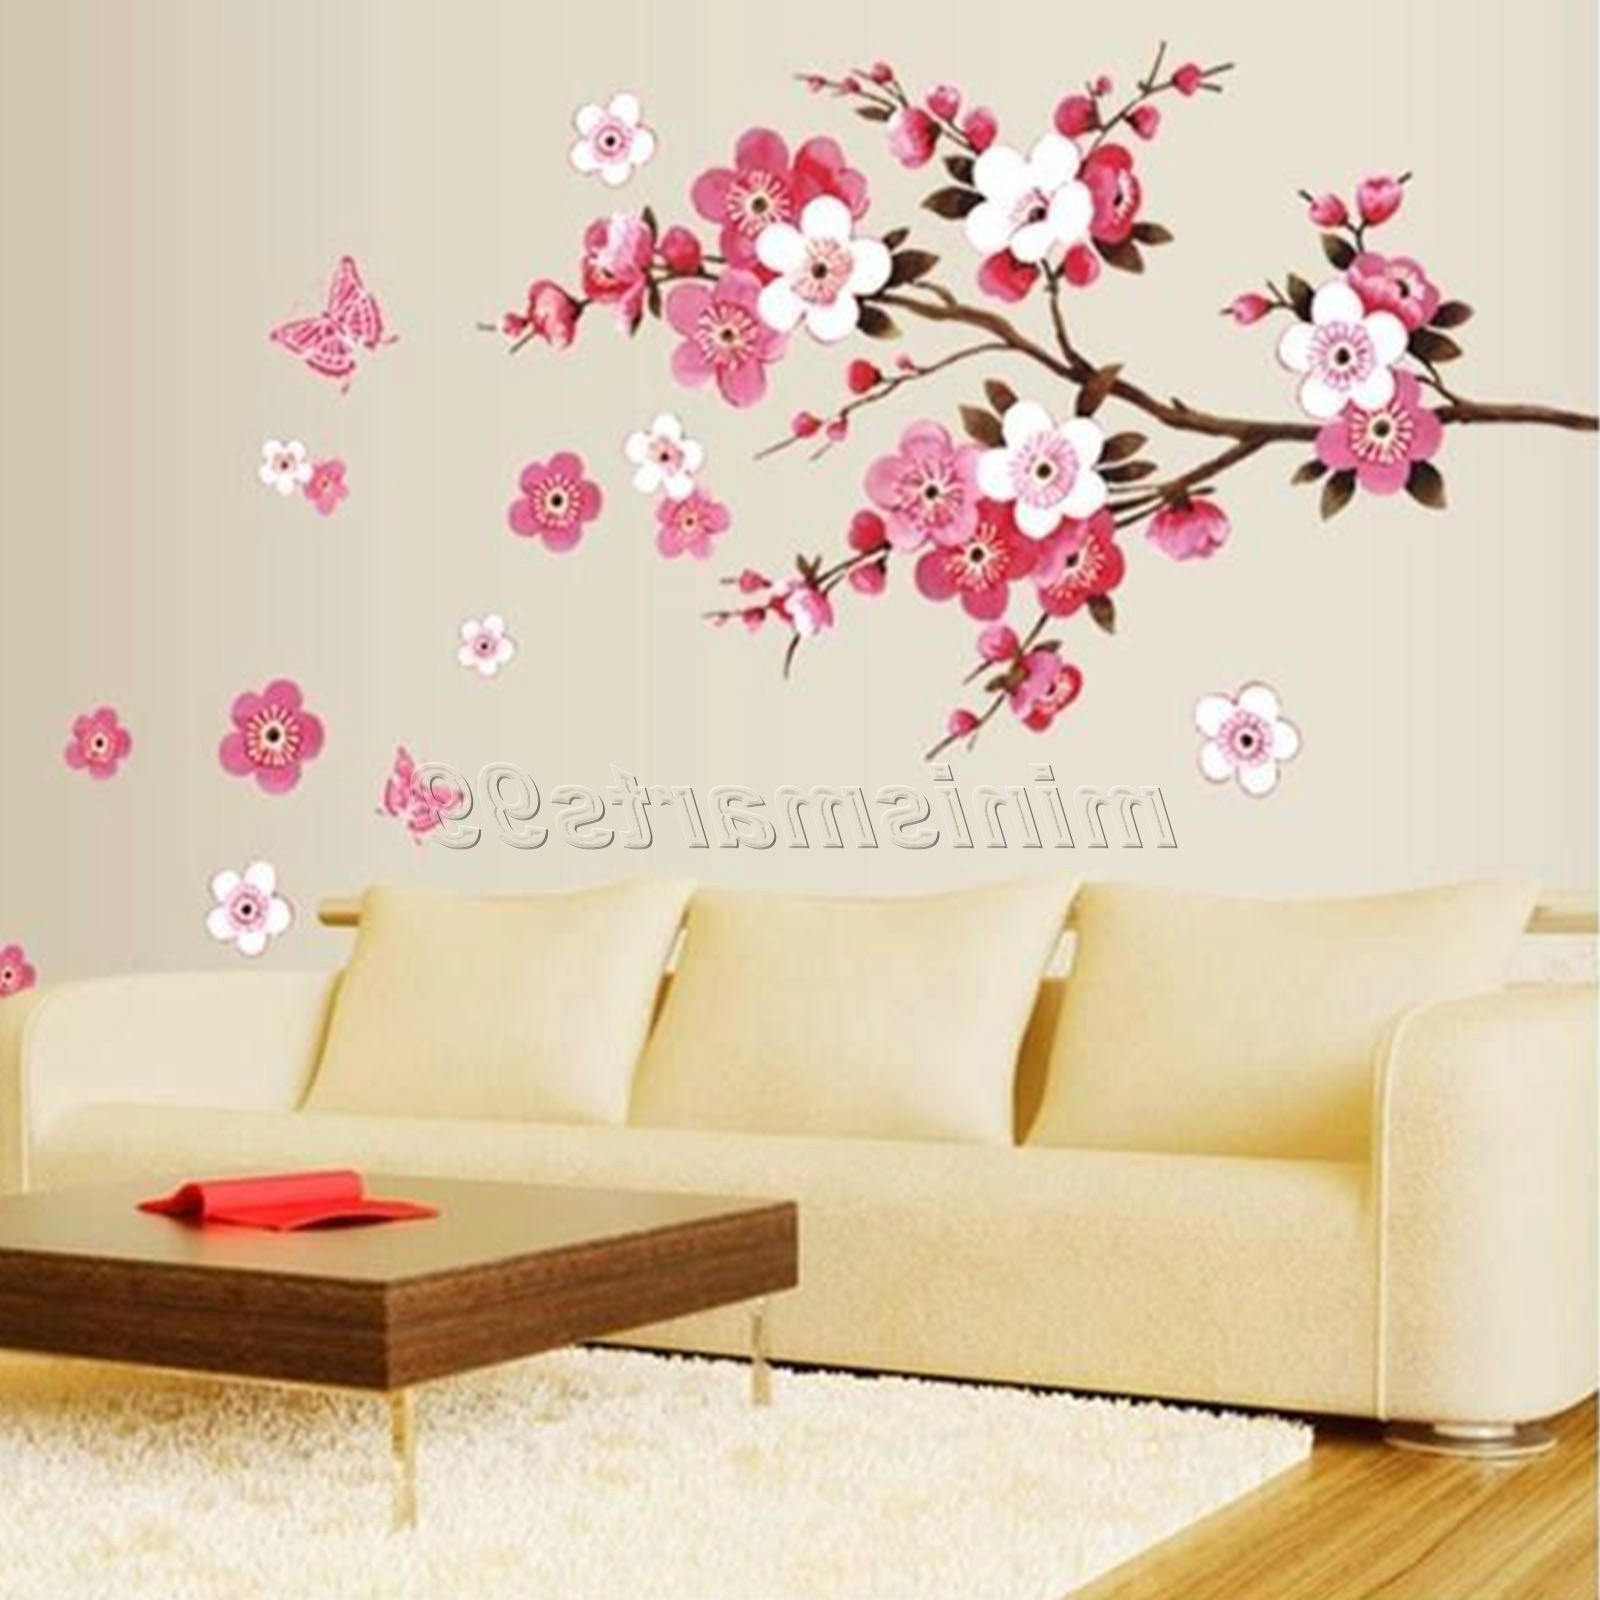 Sakura Flower Butterfly Cherry Blossom Wall Decal Nursery Tree With Most Current Cherry Blossom Wall Art (View 5 of 15)